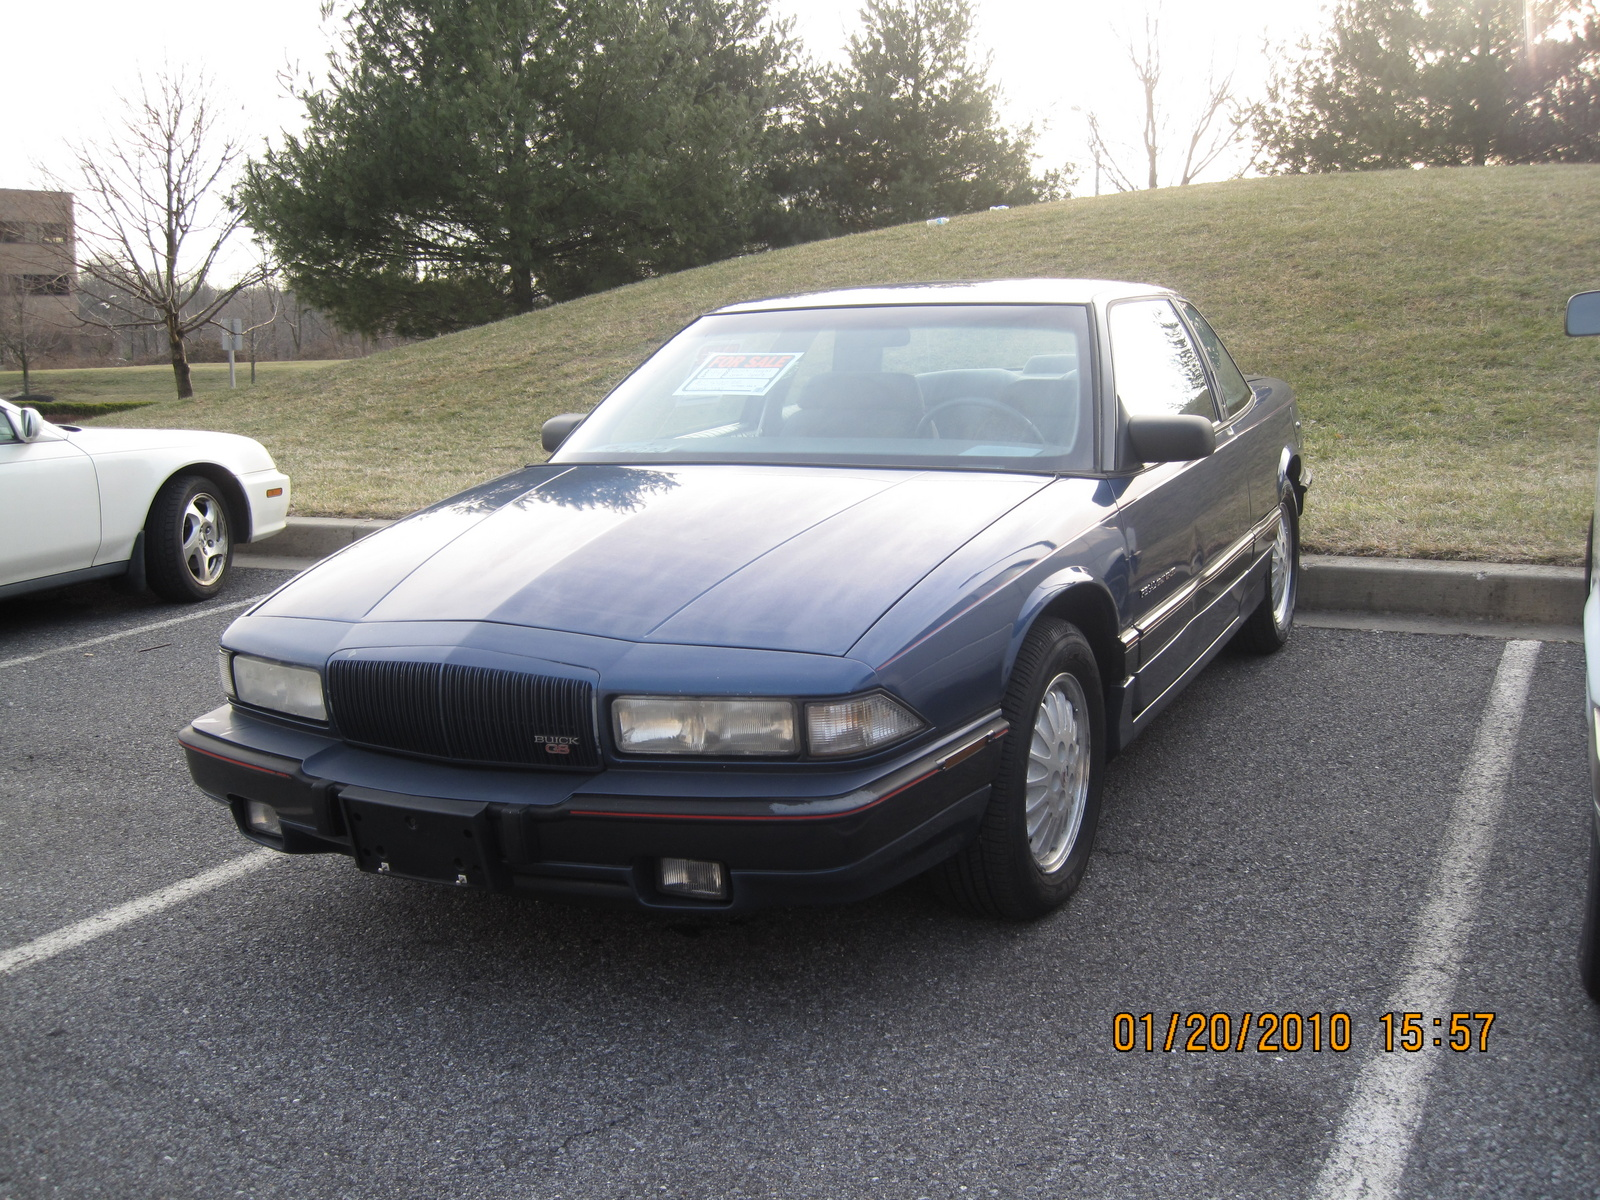 Picture of 1994 Buick Regal 2 Dr Gran Sport Coupe  exteriorBuick Regal